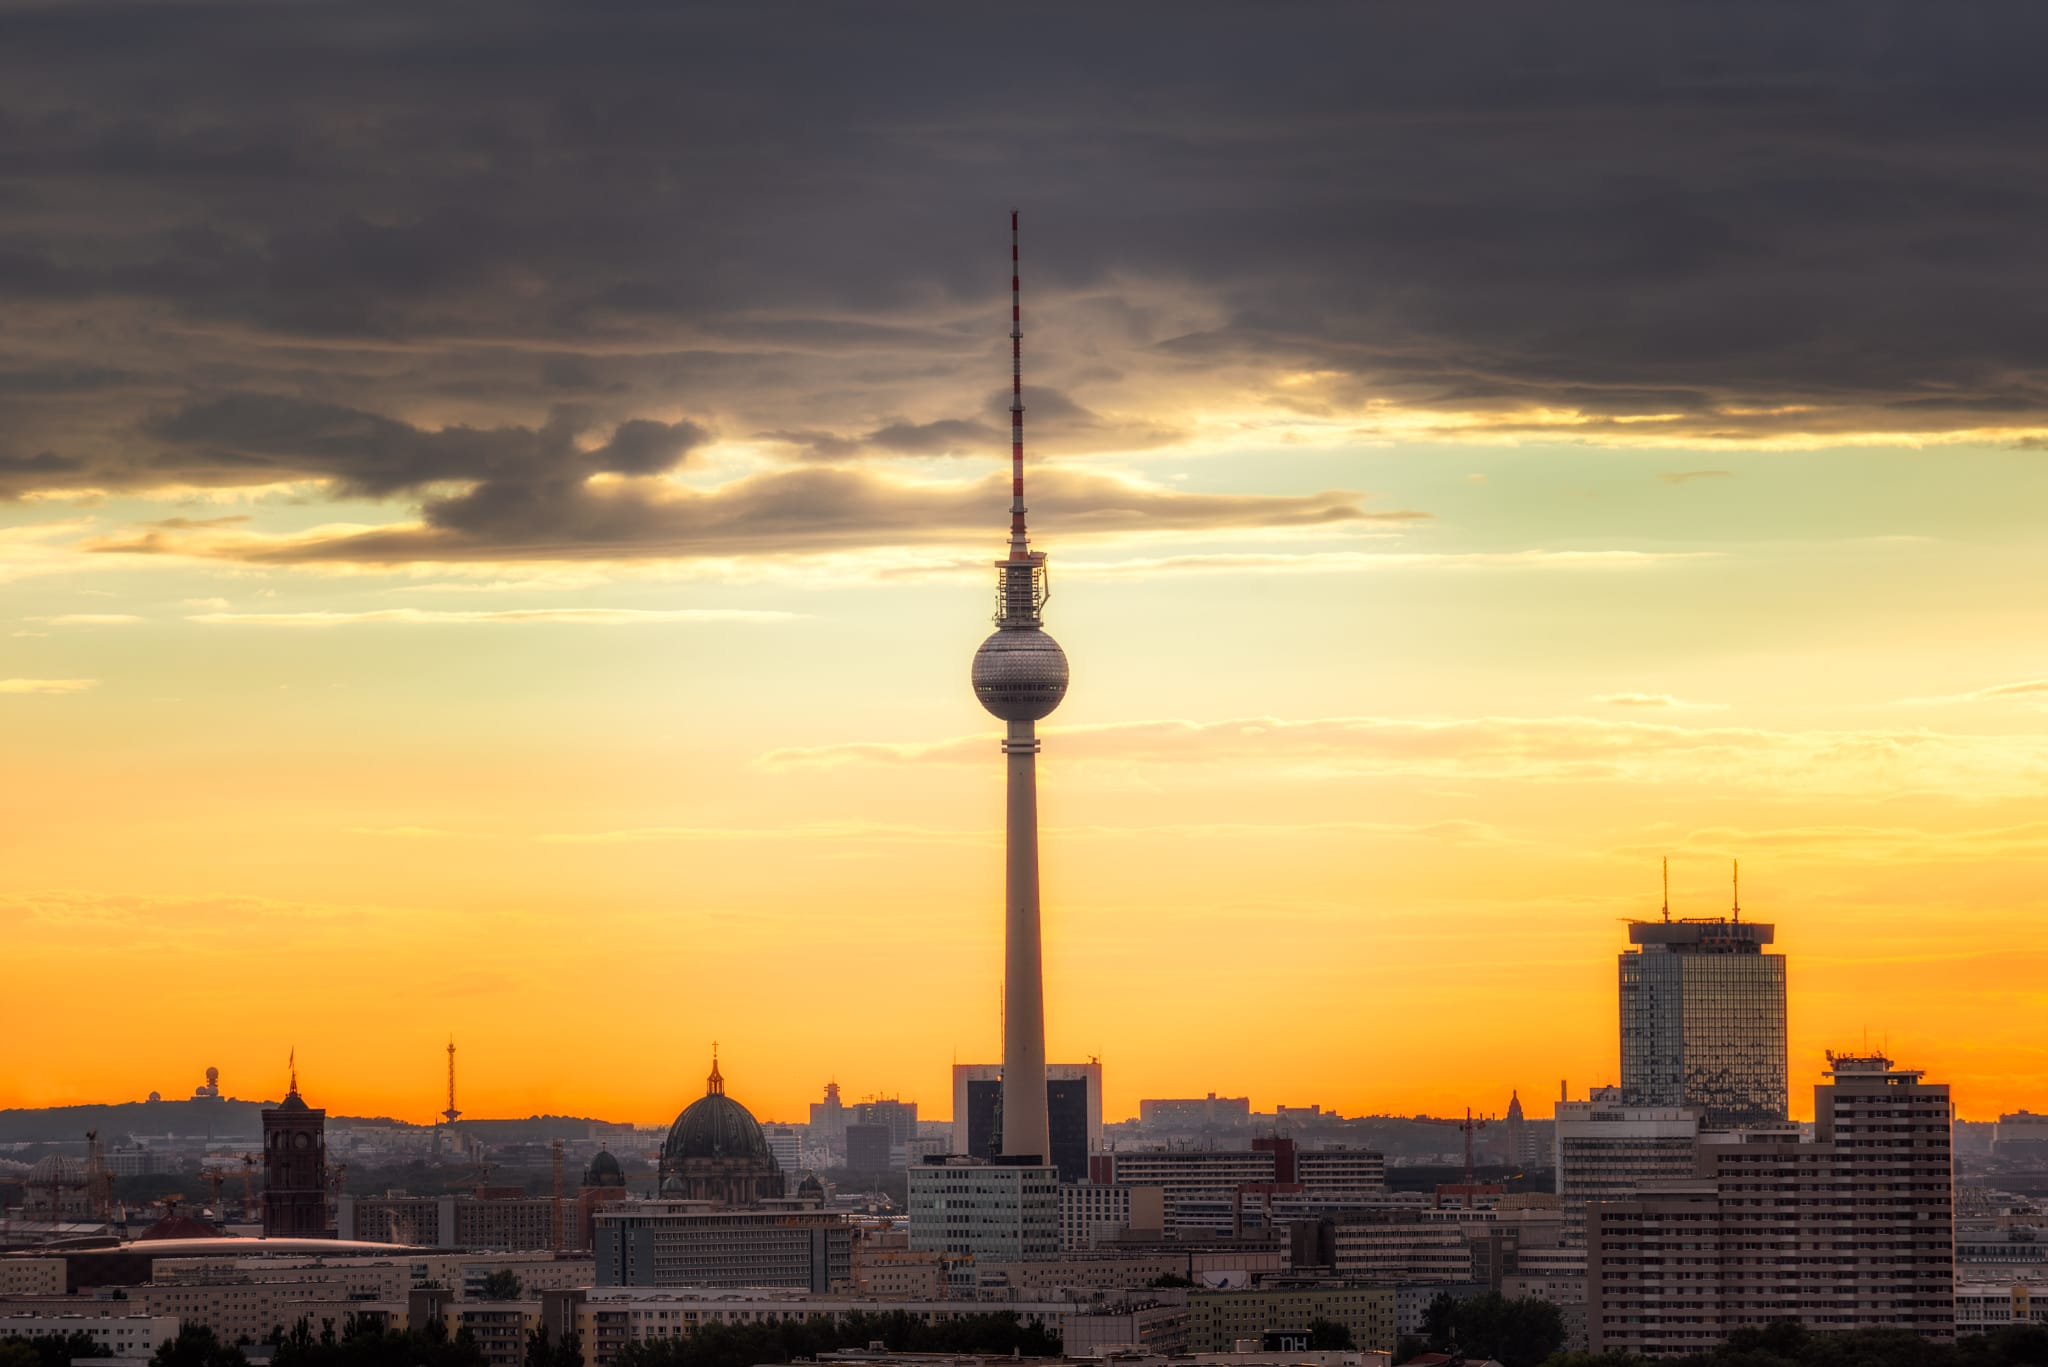 Panorama photo of Berlin center with focus on the TV Tower. Other important landmarks are also visible here as the Town Hall and Park Inn Hotel.